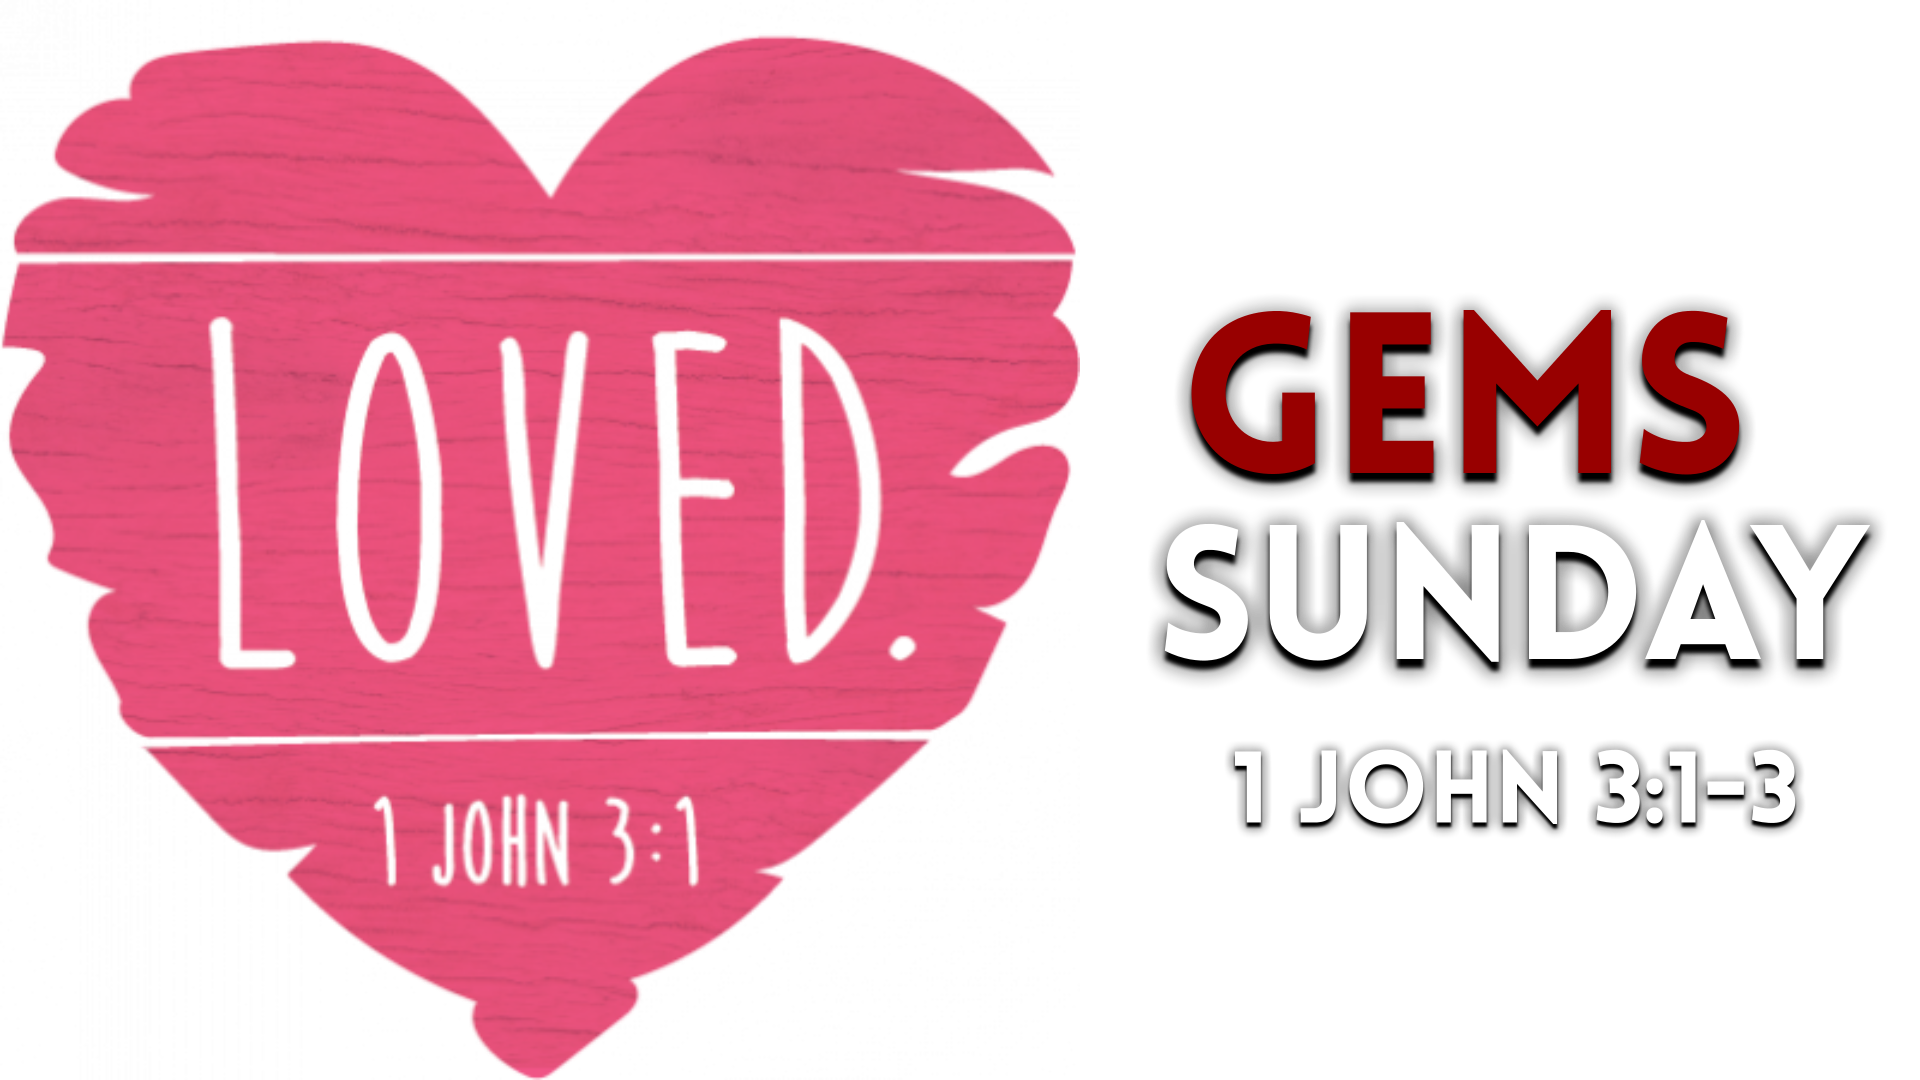 Image for the sermon LOVED.